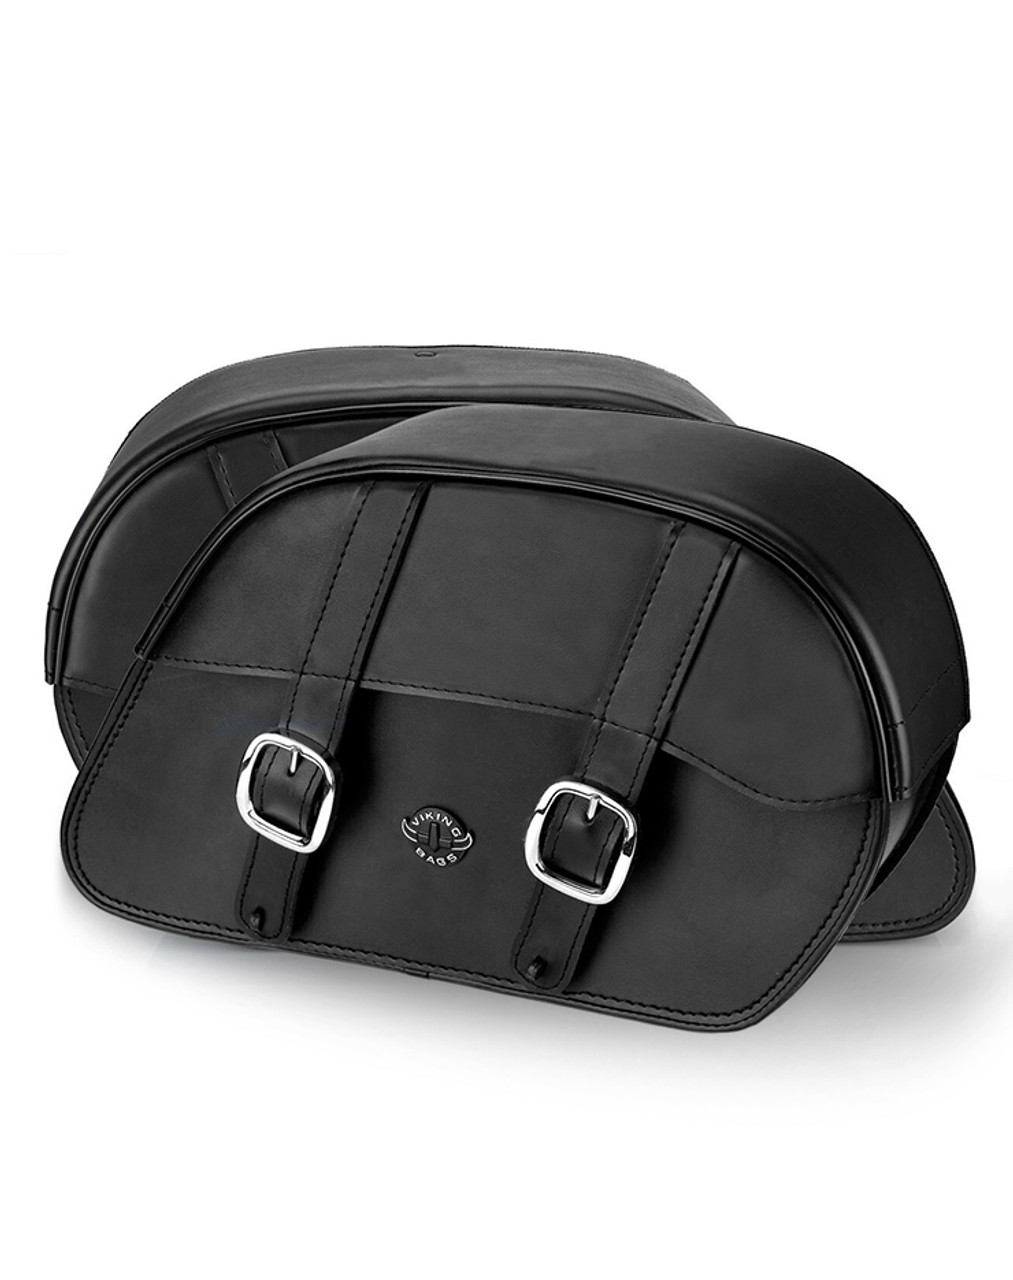 Indian Scout Sixty Slanted Medium Motorcycle Saddlebags Both Bags View